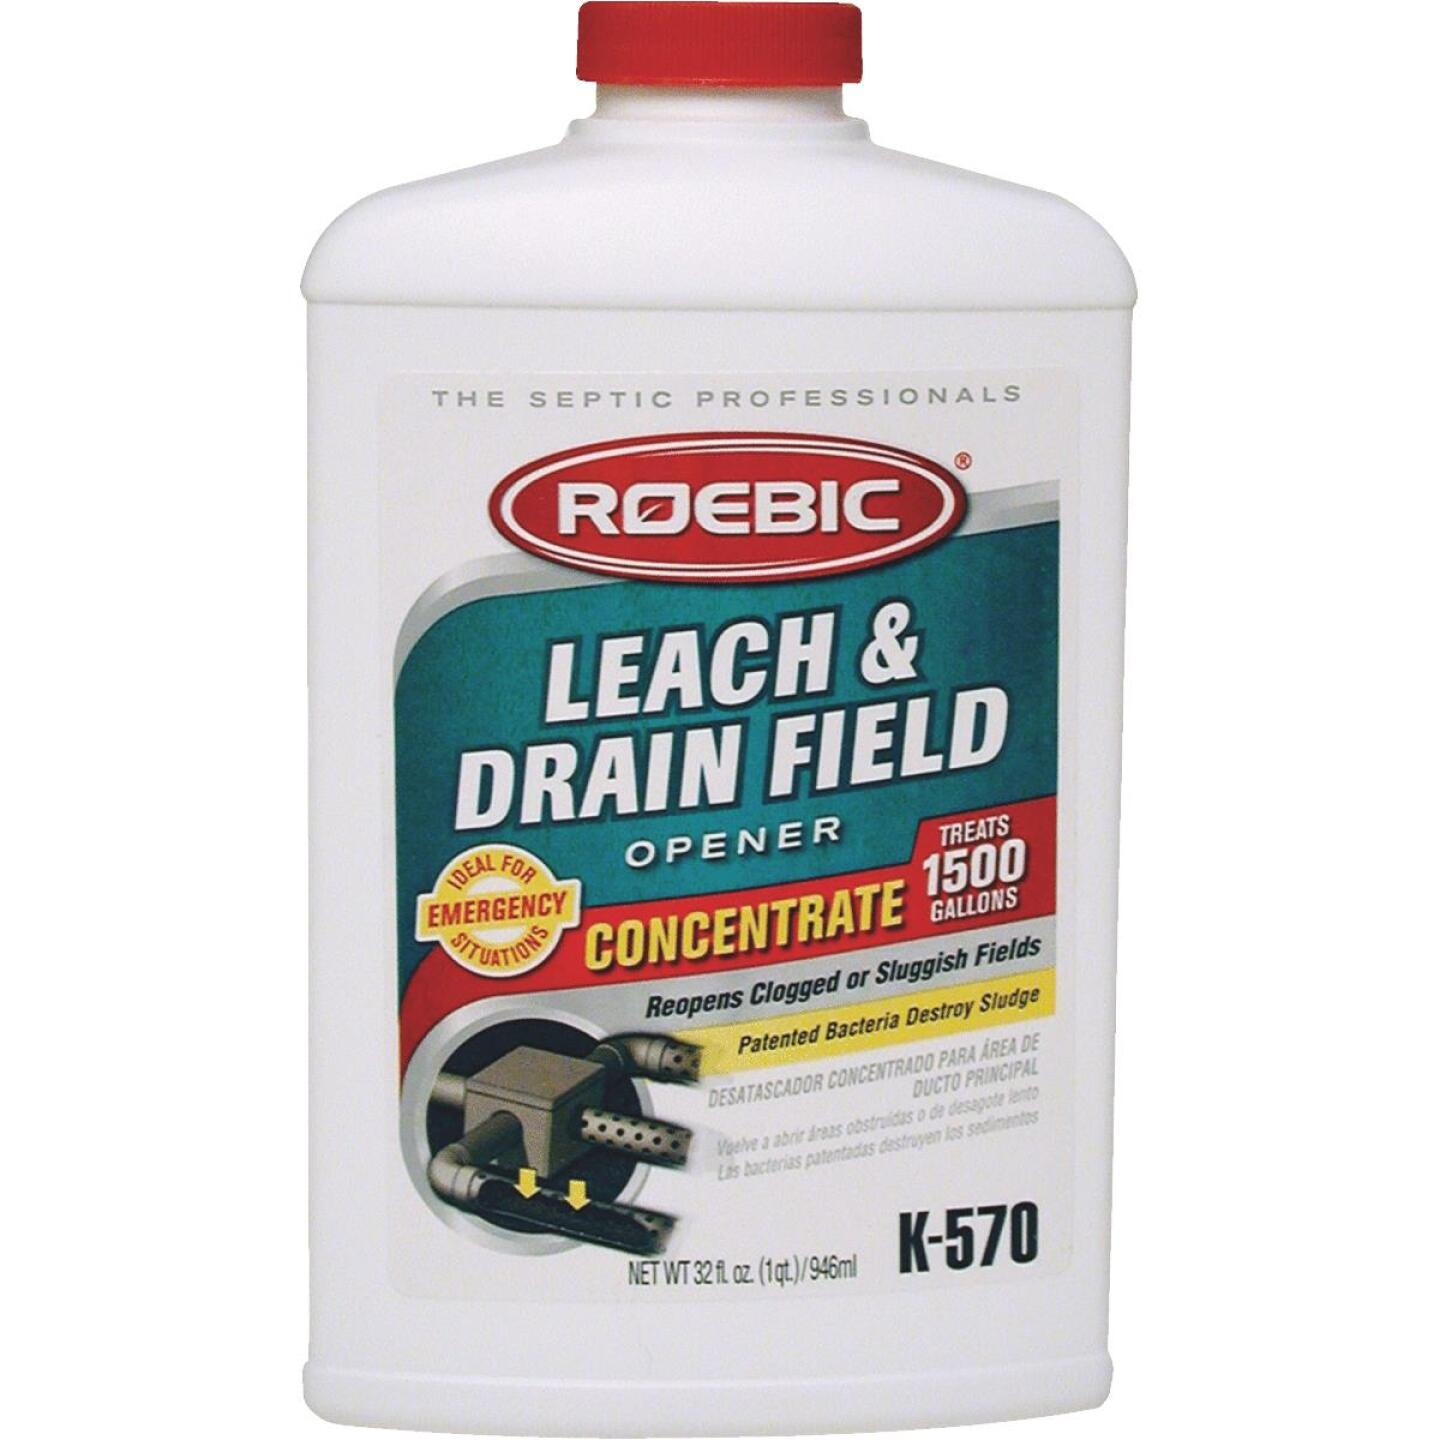 Roebic K-570 1 Qt. Concentrate Septic Tank Treatment Leach and Drainfield Cleaner Image 1